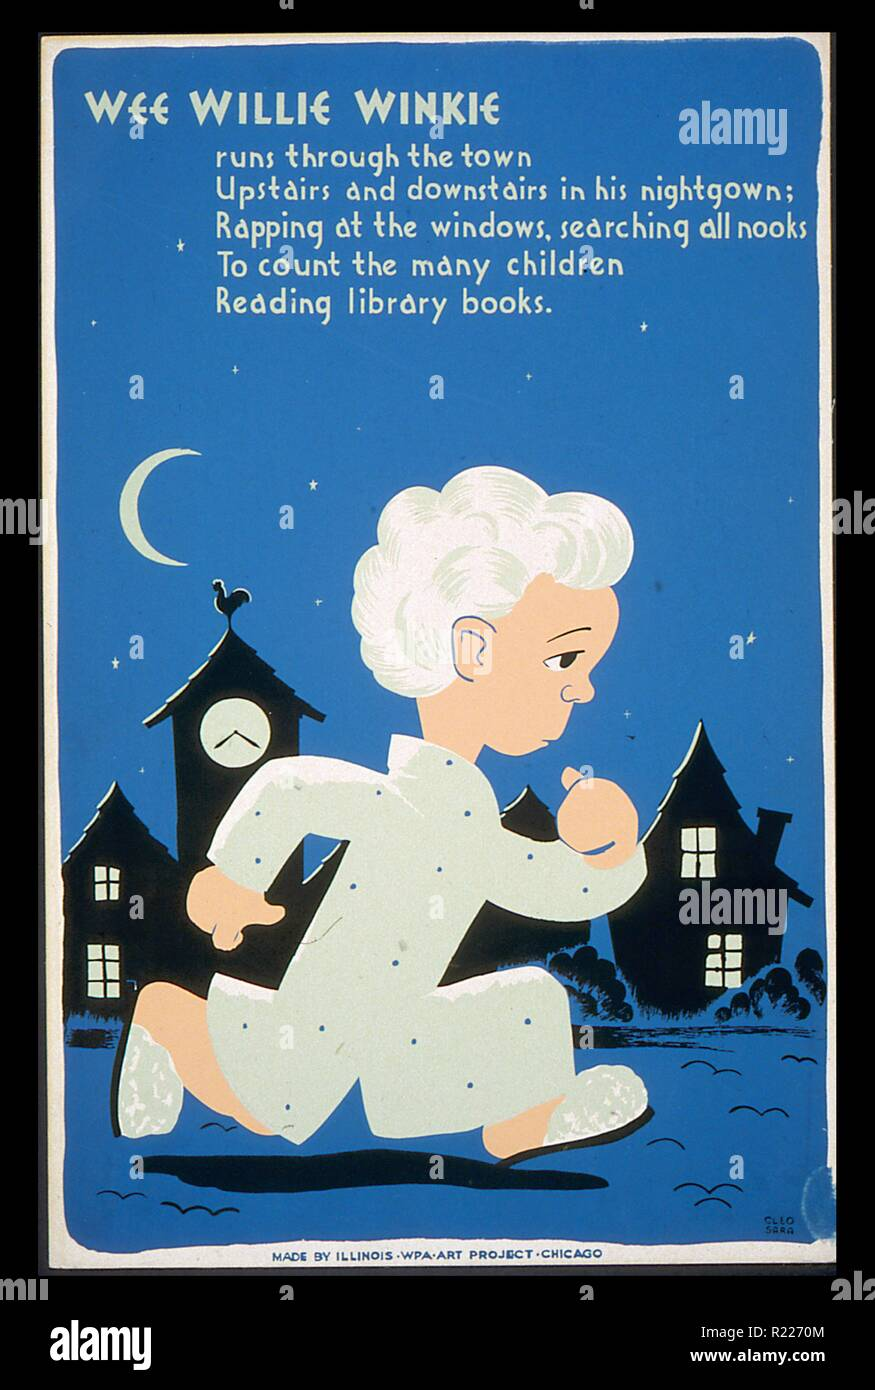 Wee Willie Winkie runs through the town ... to count the many children reading library books by Cleo Sara [1940]: Poster promoting the use of libraries by children, showing a child in pajamas and slippers running through a village at night. - Stock Image